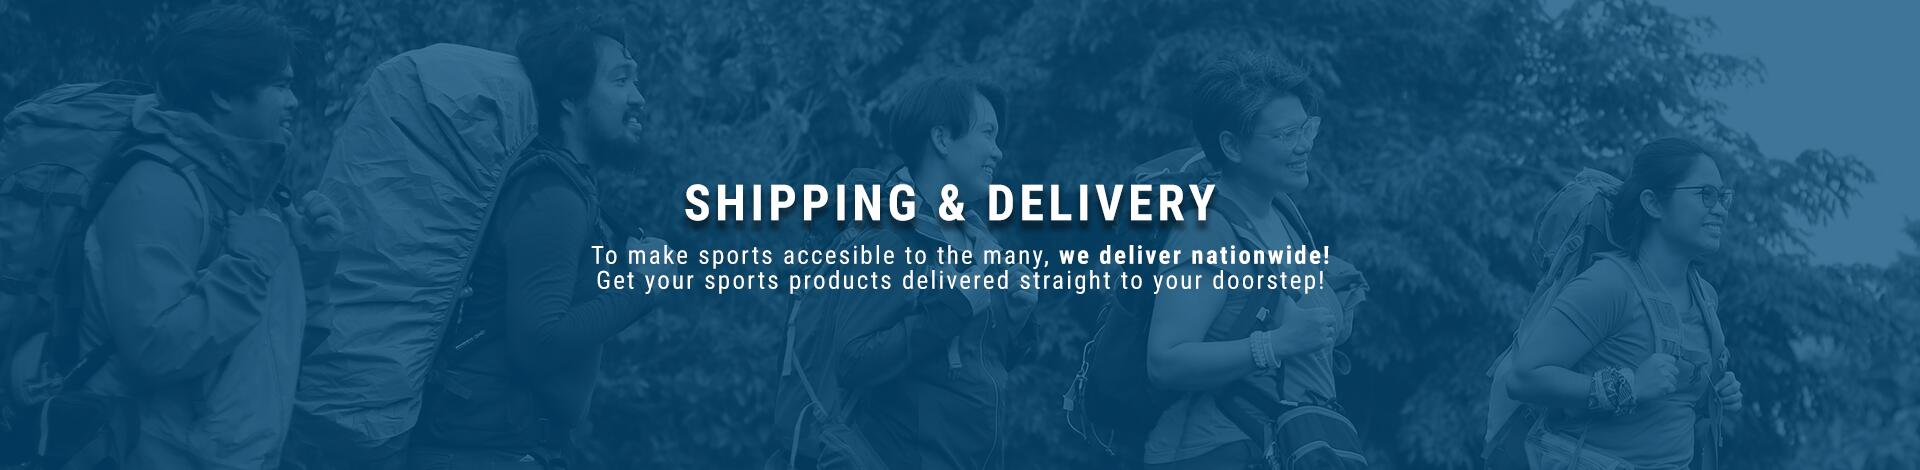 Decathlon Philippines Shipping and Delivery